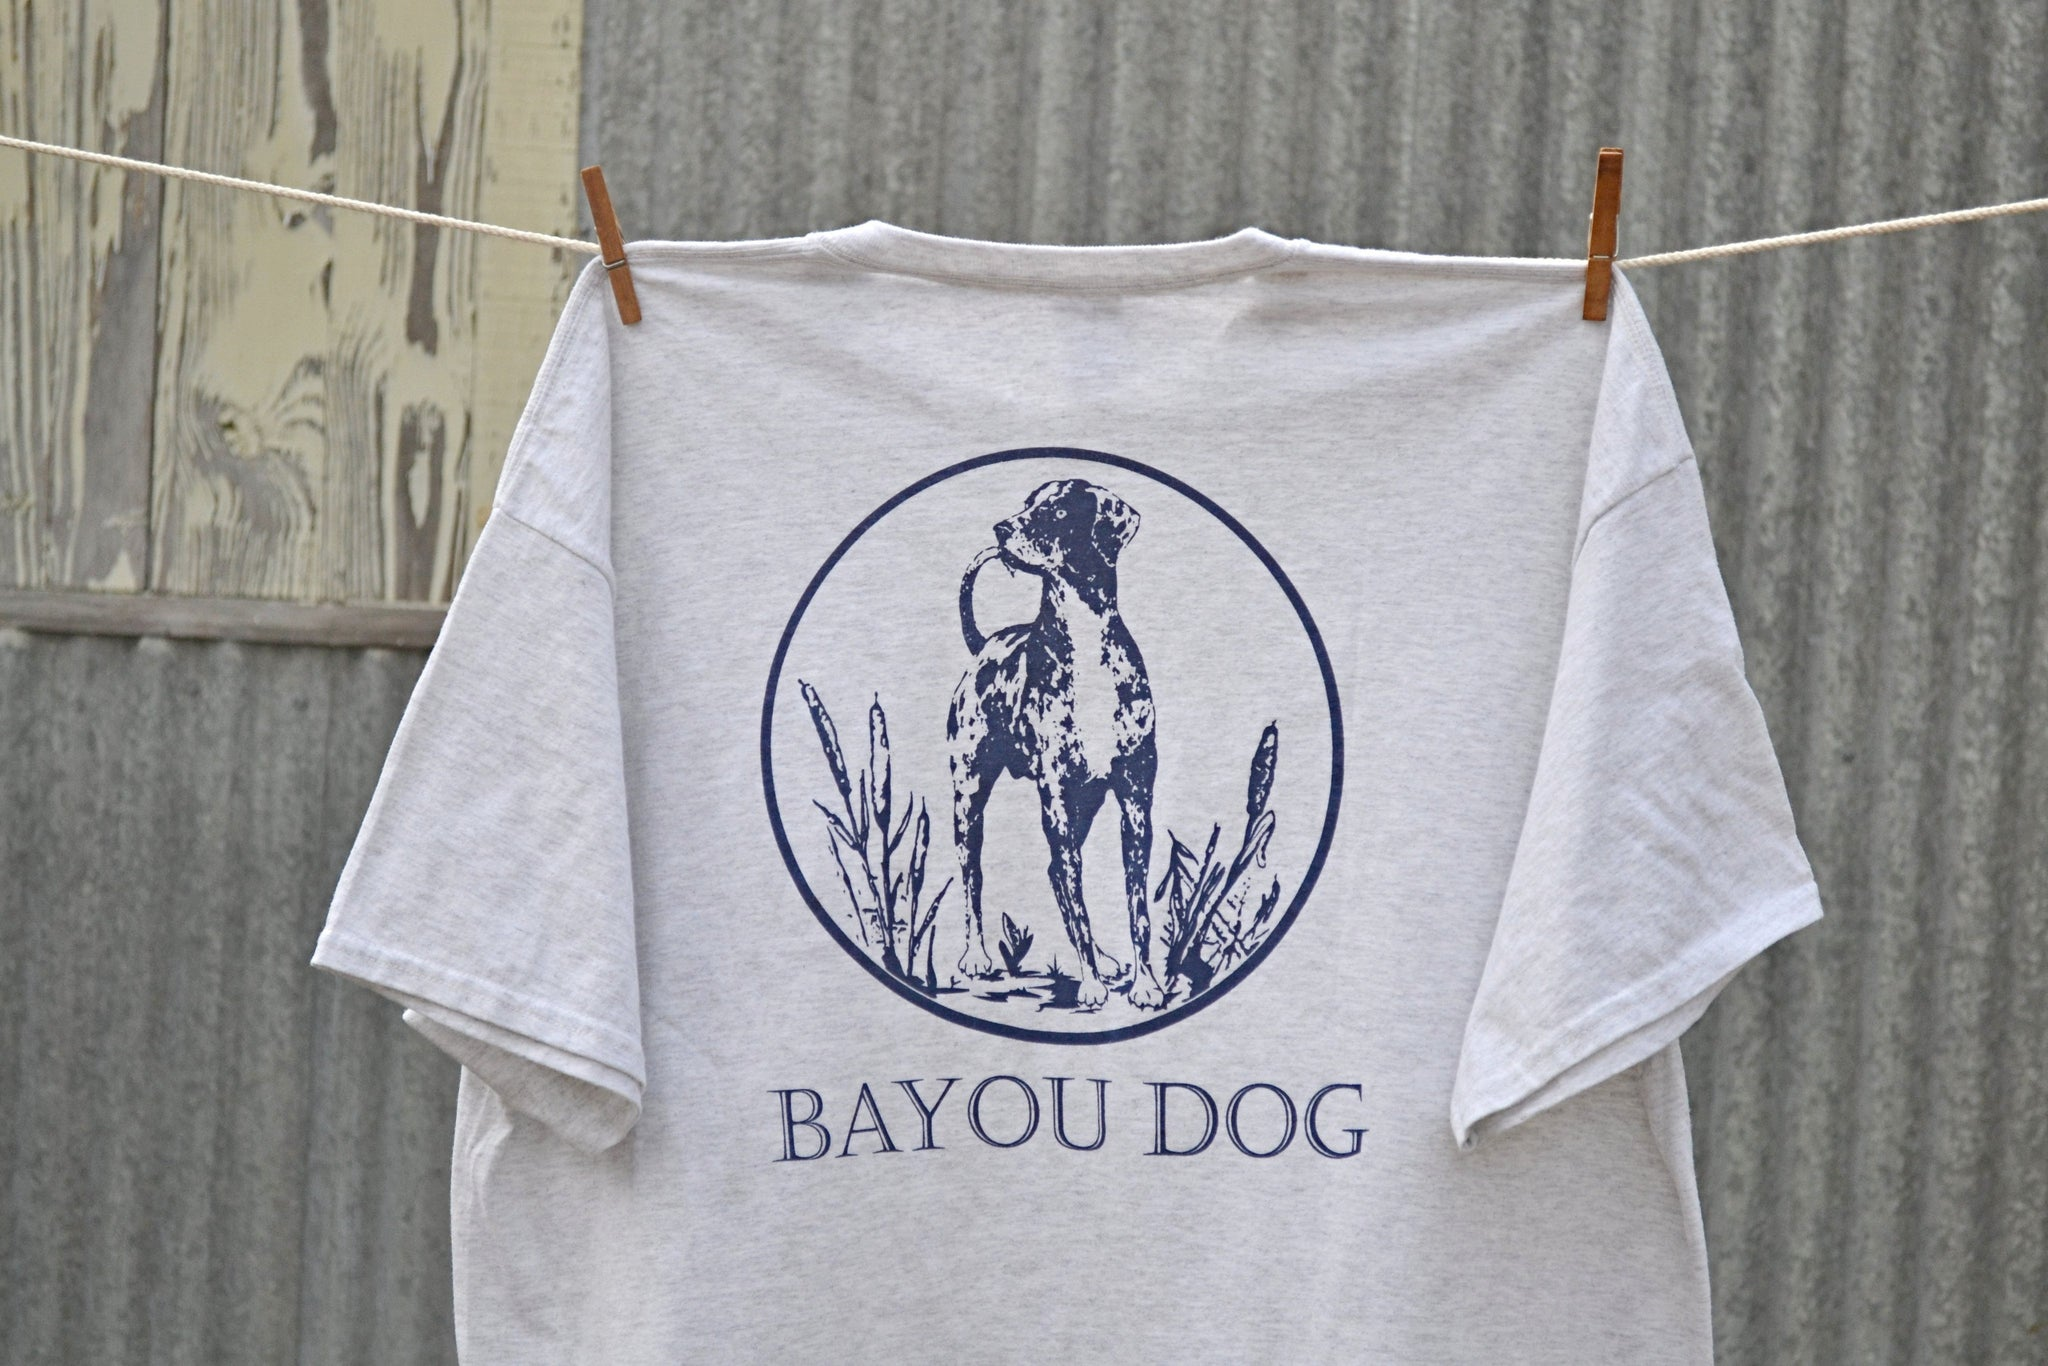 Bayou Dog T-Shirt (Ash Gray) - The Louisiana Catahoula Catalog, Inc. Bayou Dog T-Shirt (Ash Gray) - The Catahoula Shop